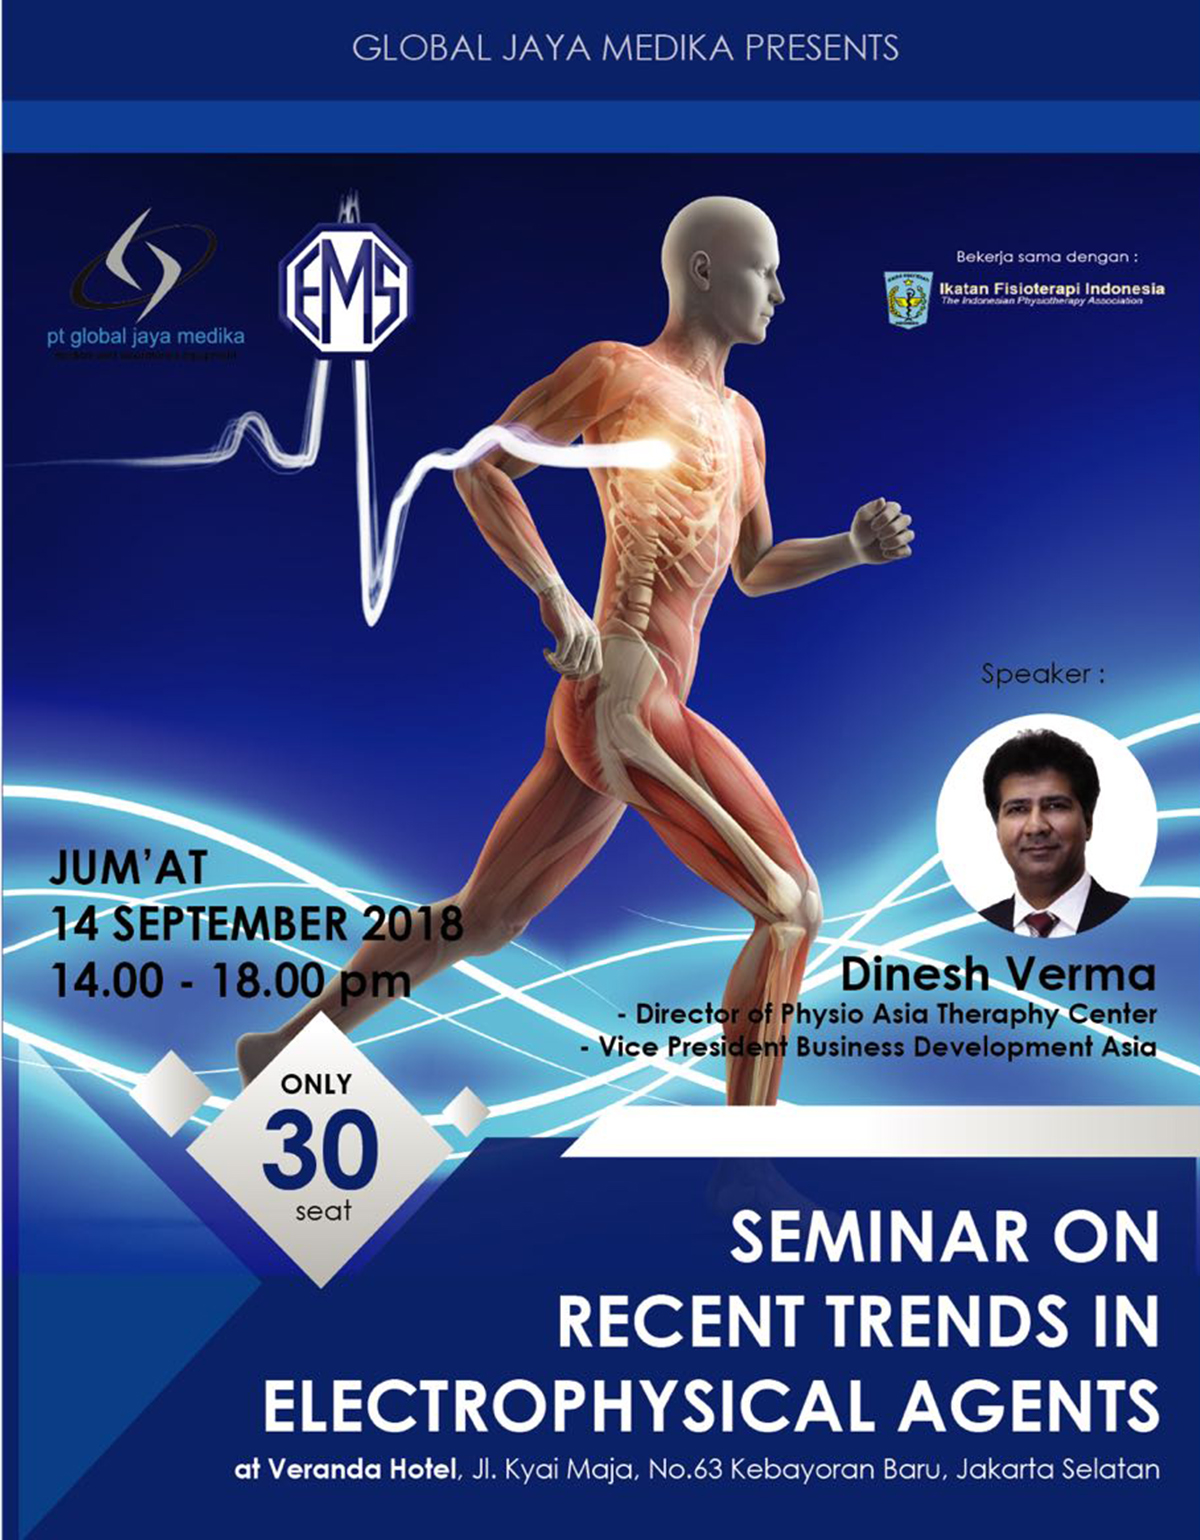 Seminar on Recent Trends in Electrophysical Agents